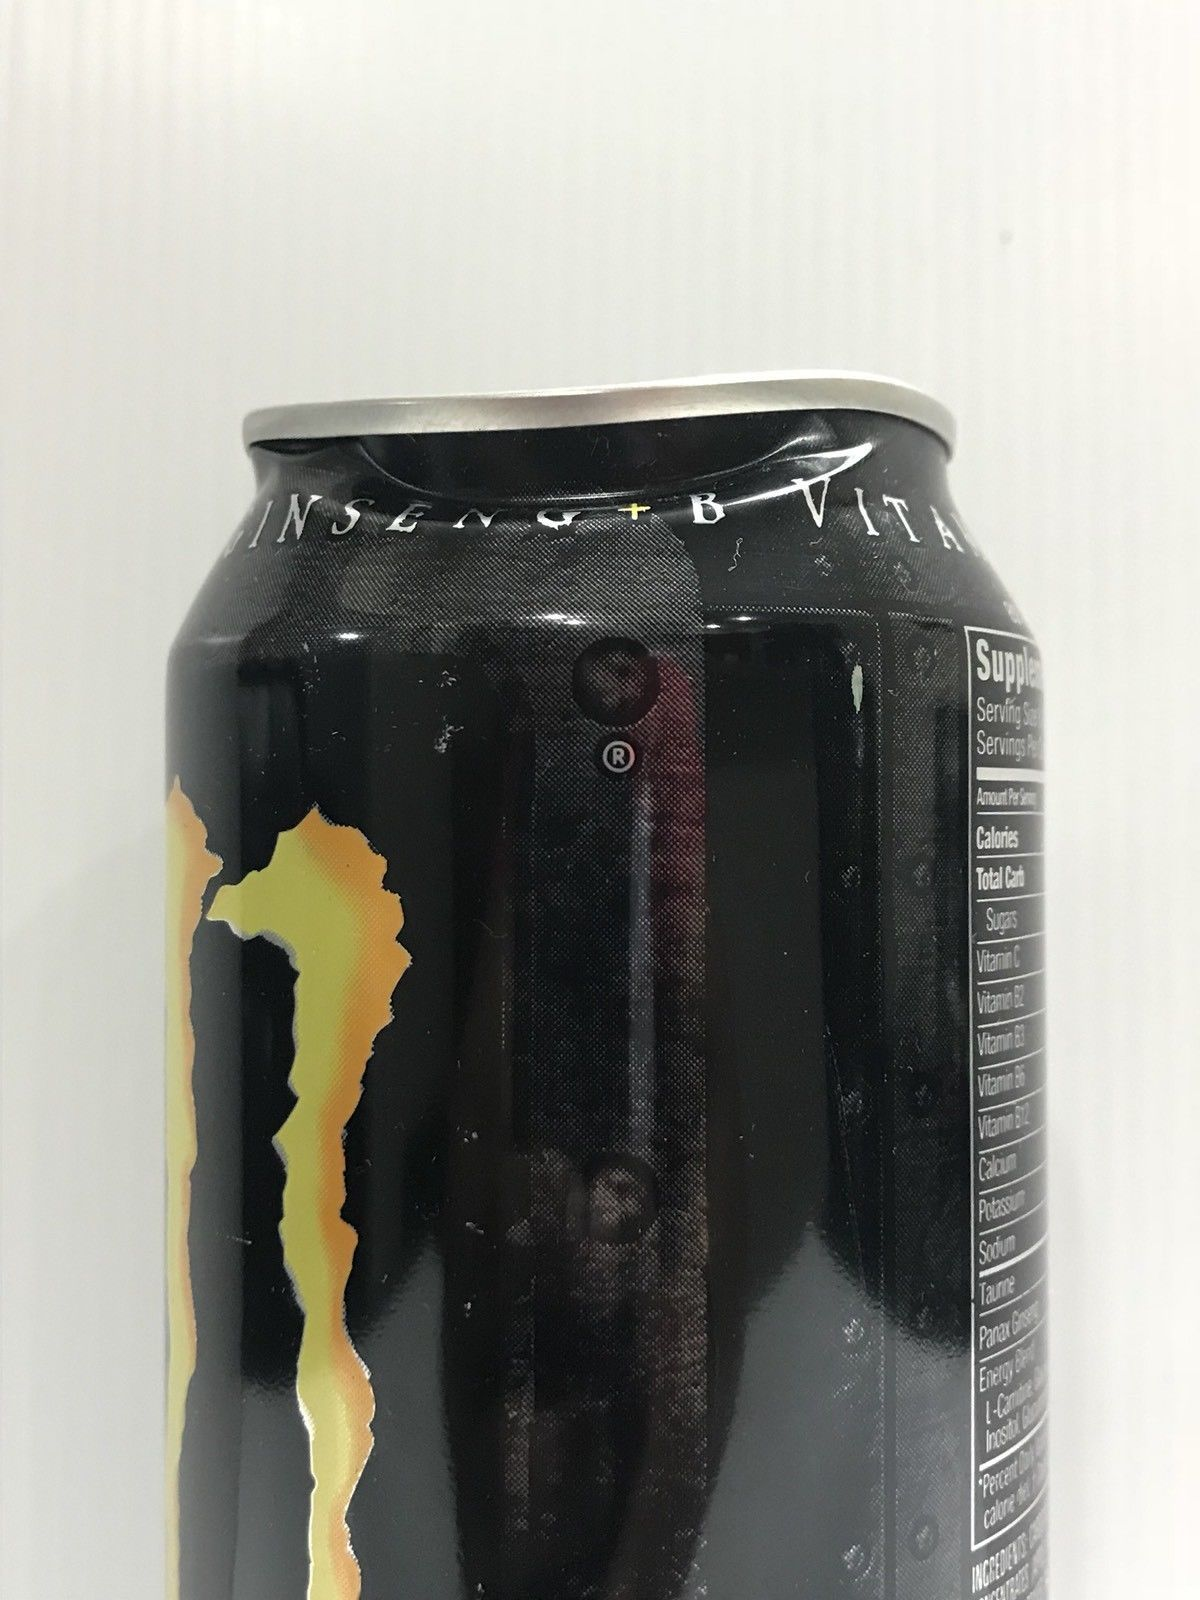 Monster Energy Drink M-80 M80 Full Collectors Can. Slightly Dented Near Rim